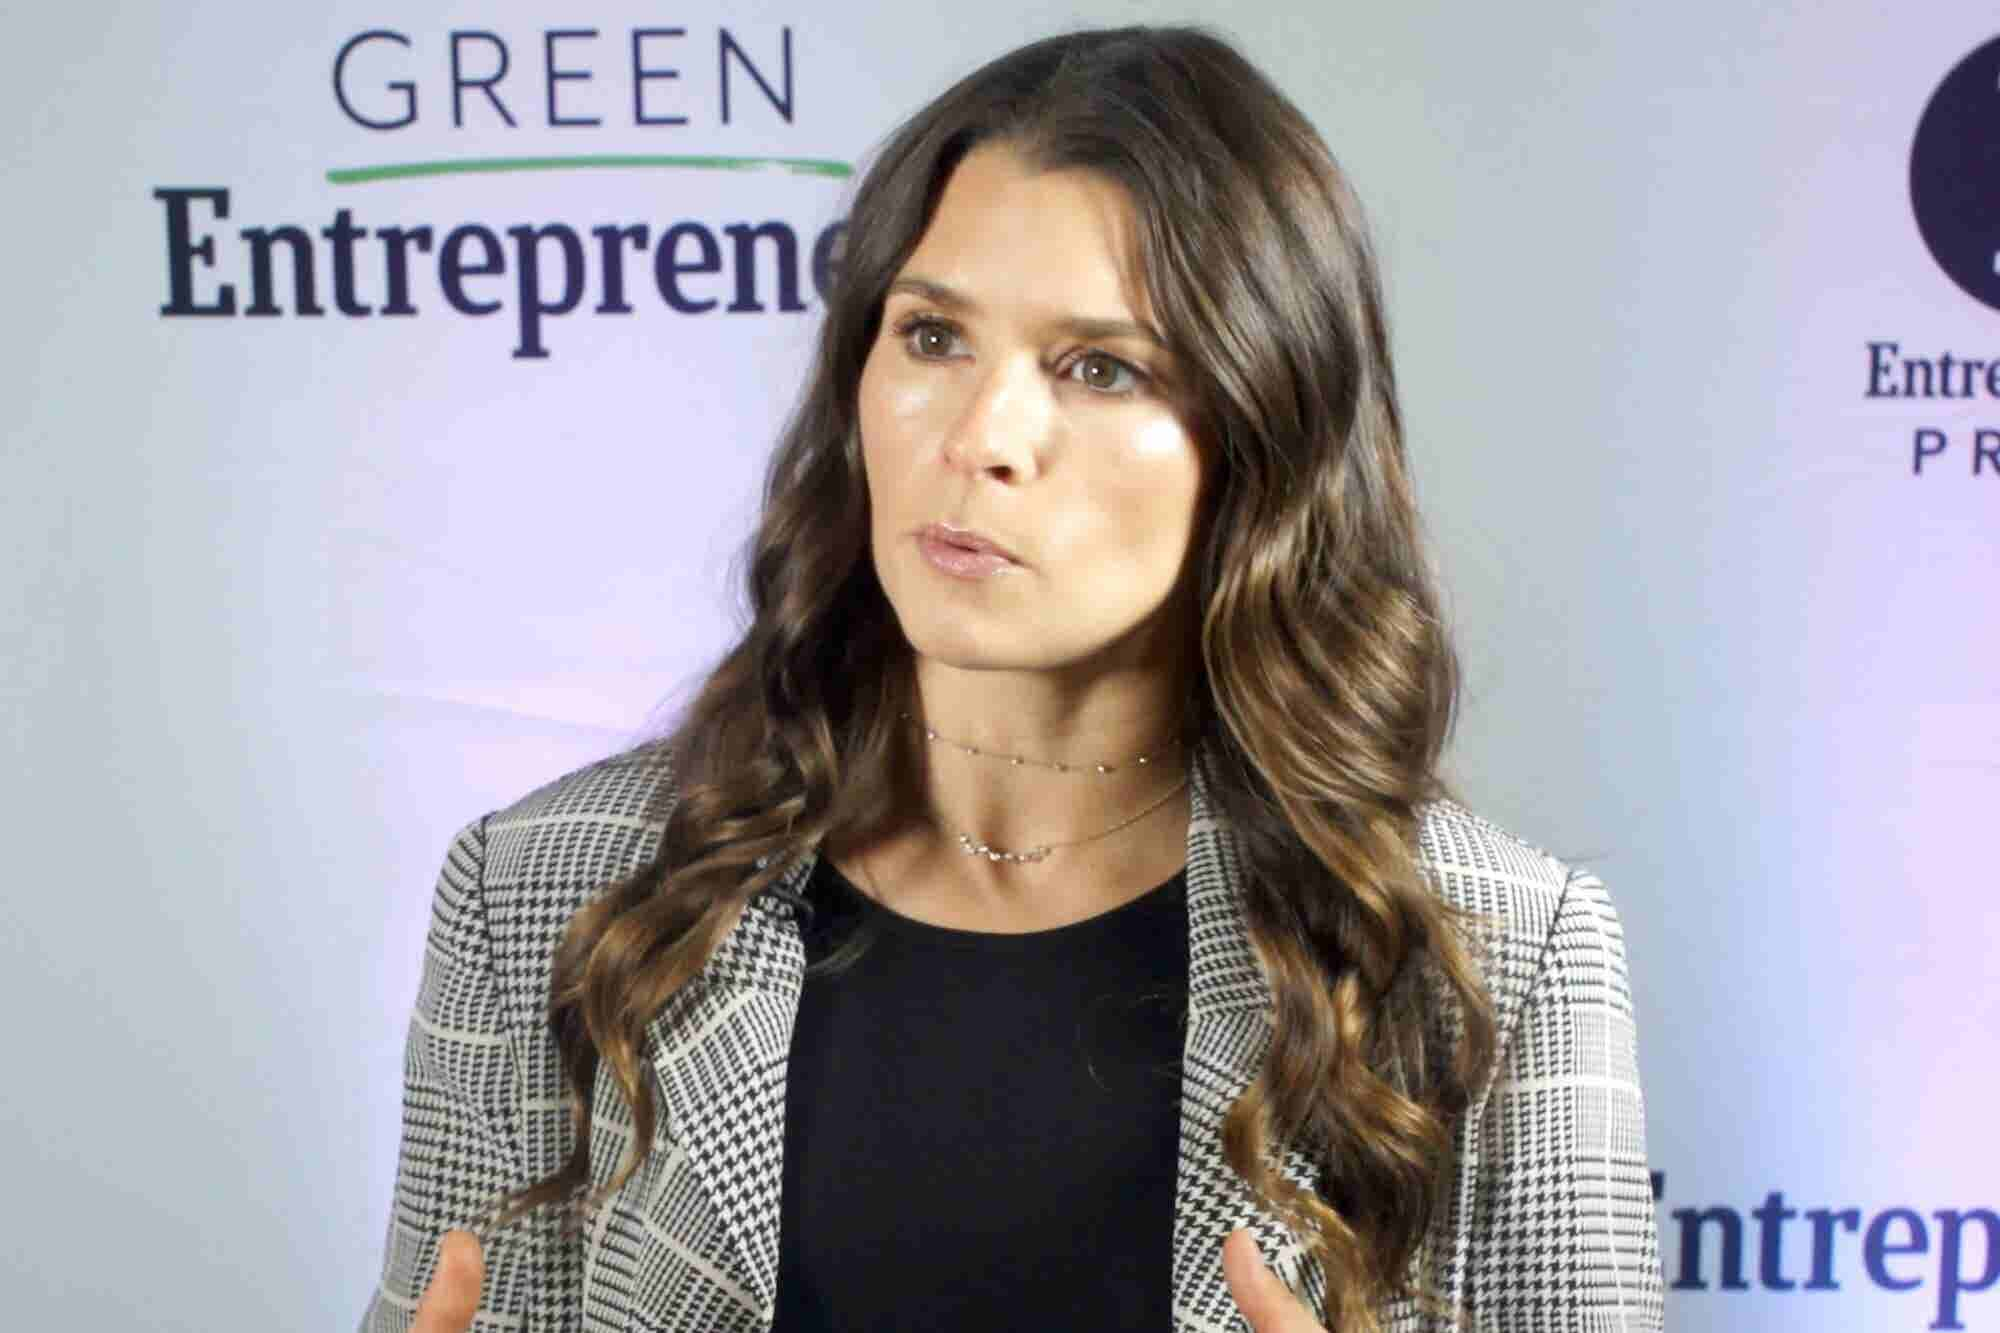 Danica Patrick: 'For Anything to Be Successful, It Needs to Come From a Place of Passion'